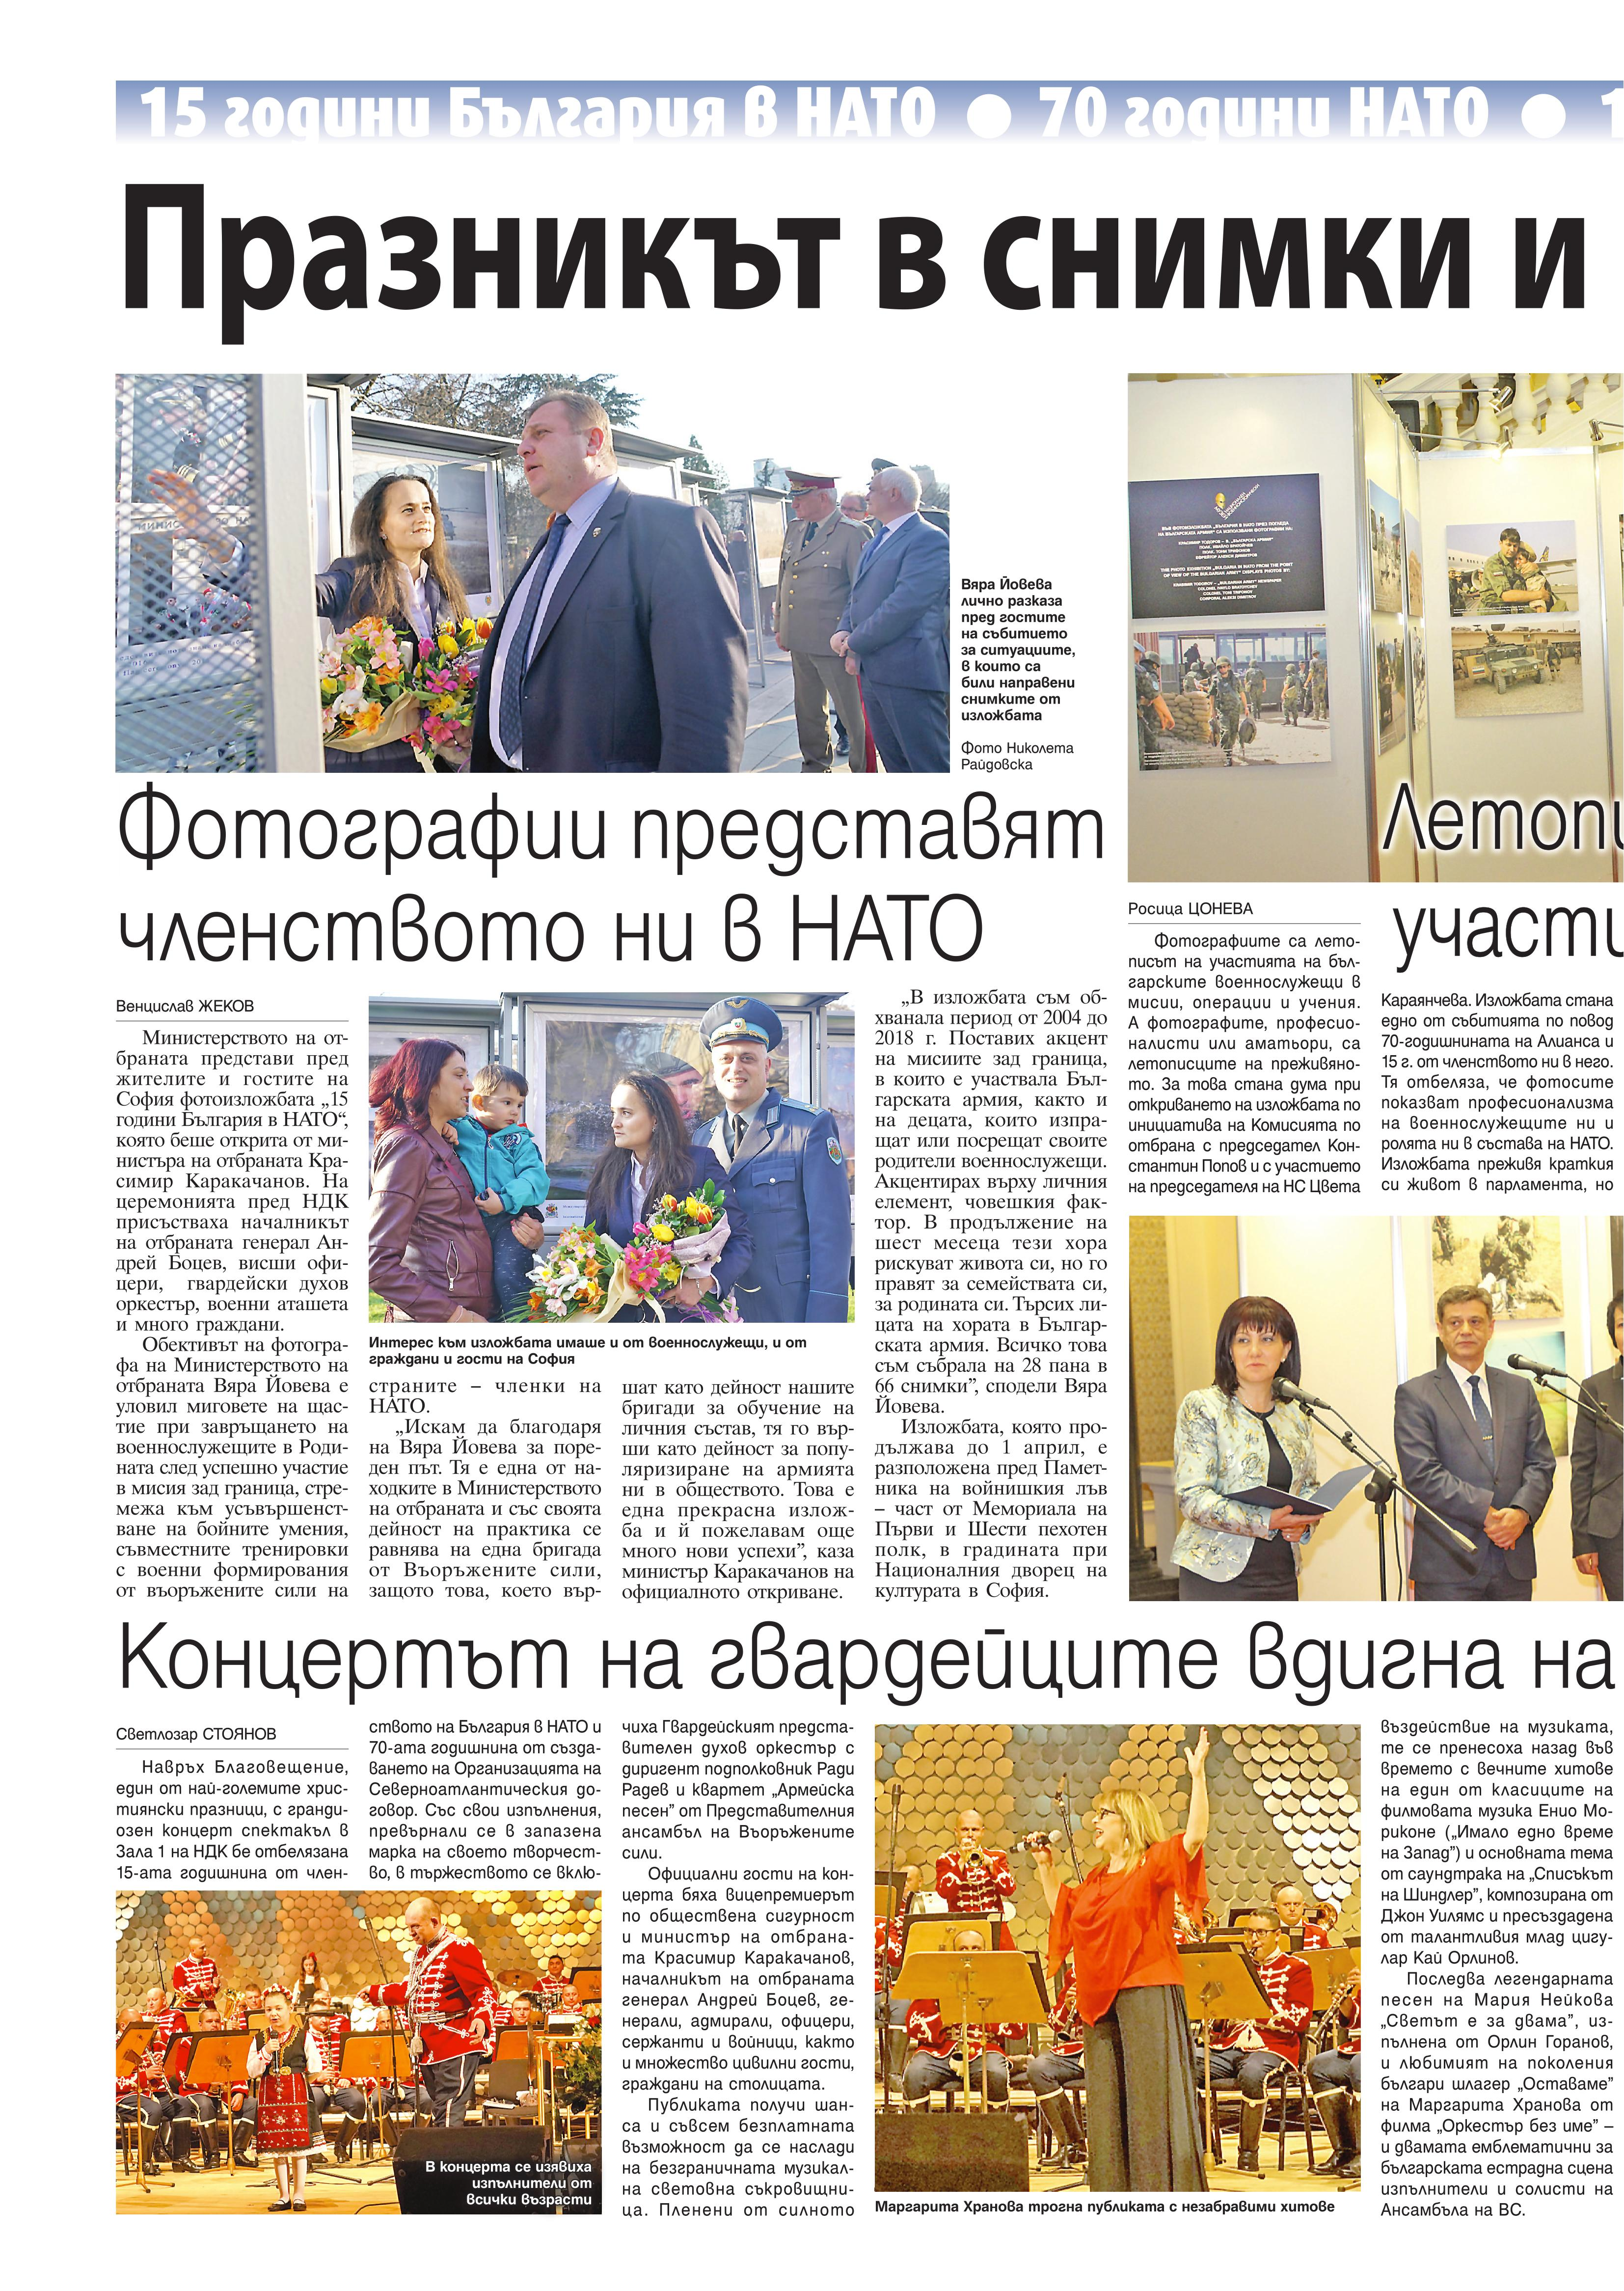 https://www.armymedia.bg/wp-content/uploads/2015/06/16.page1_-89.jpg